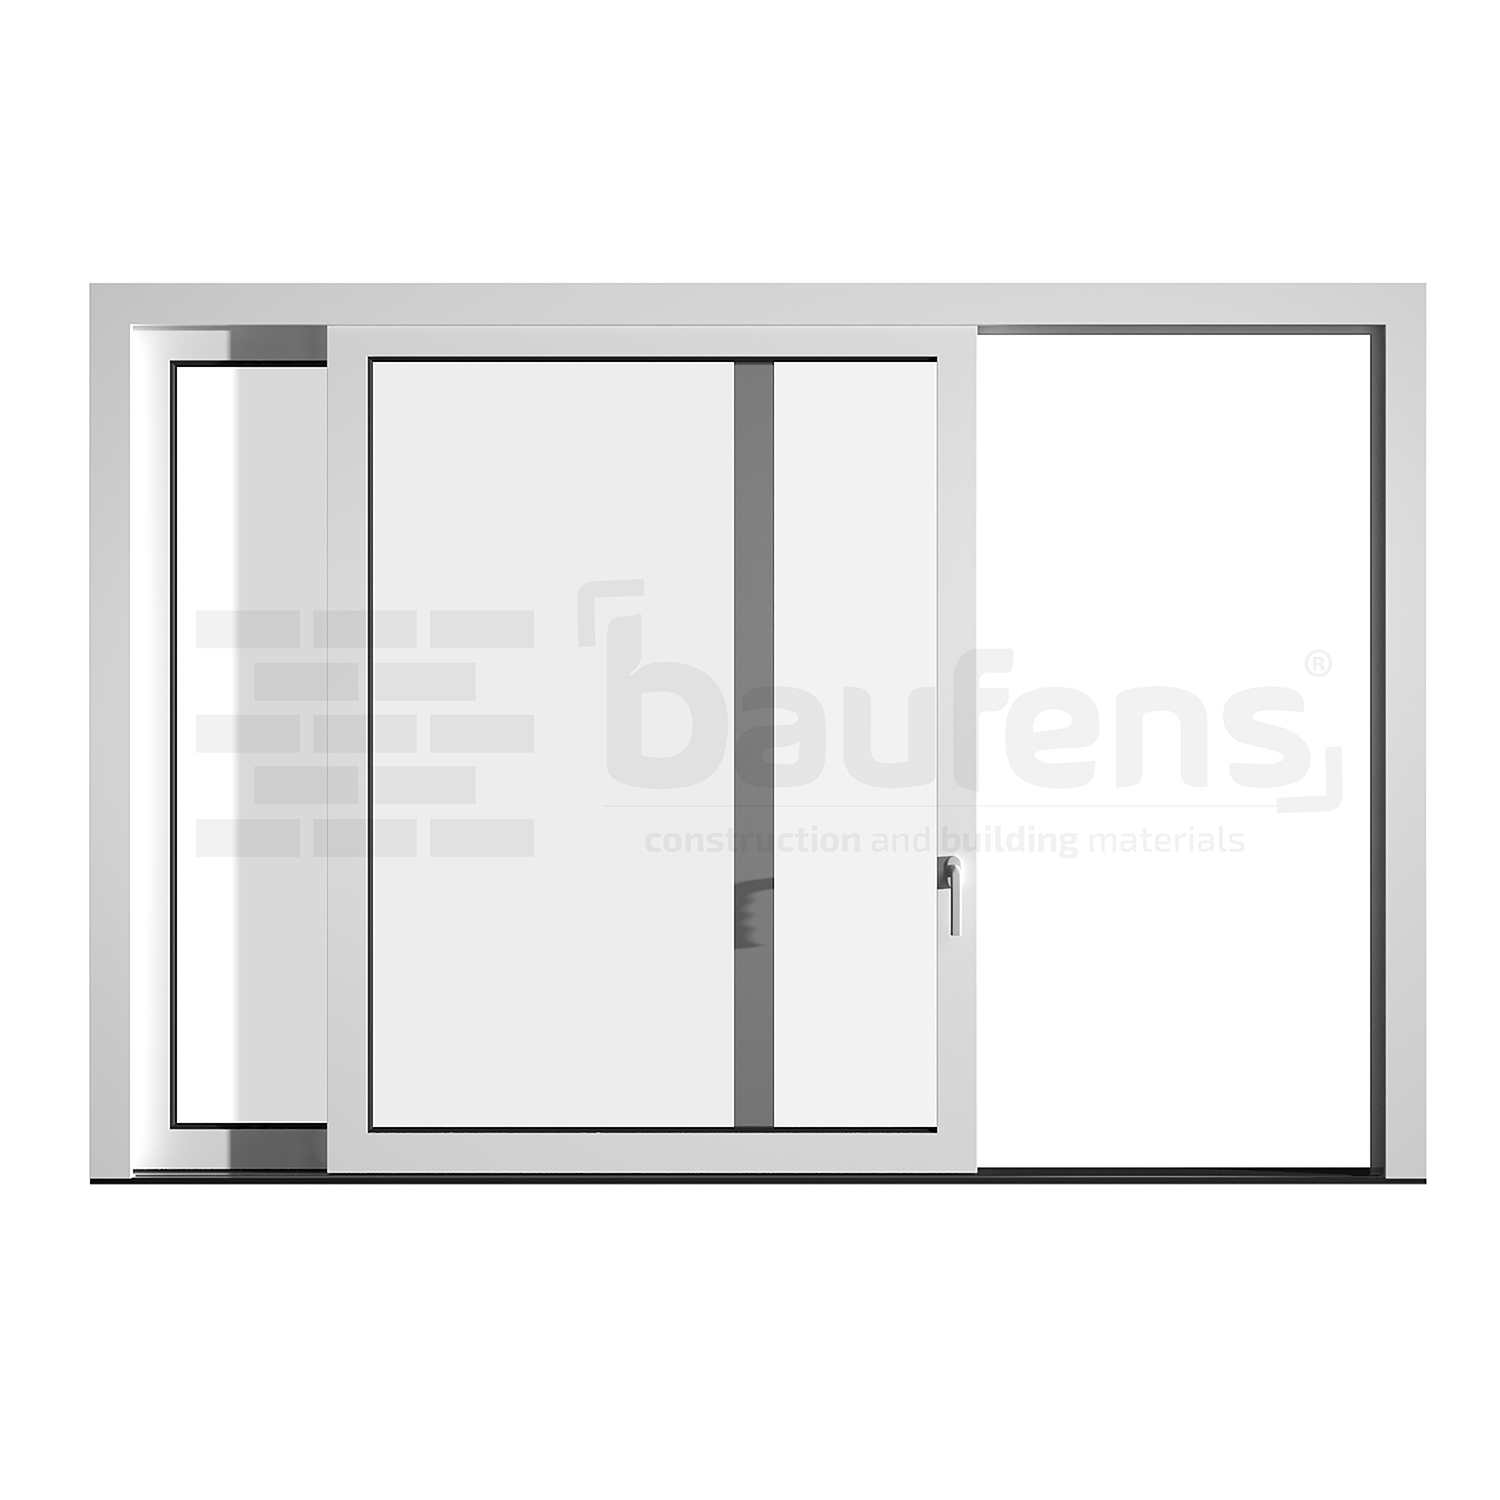 sliding-window-upvc-size-240-x7x110-cm.